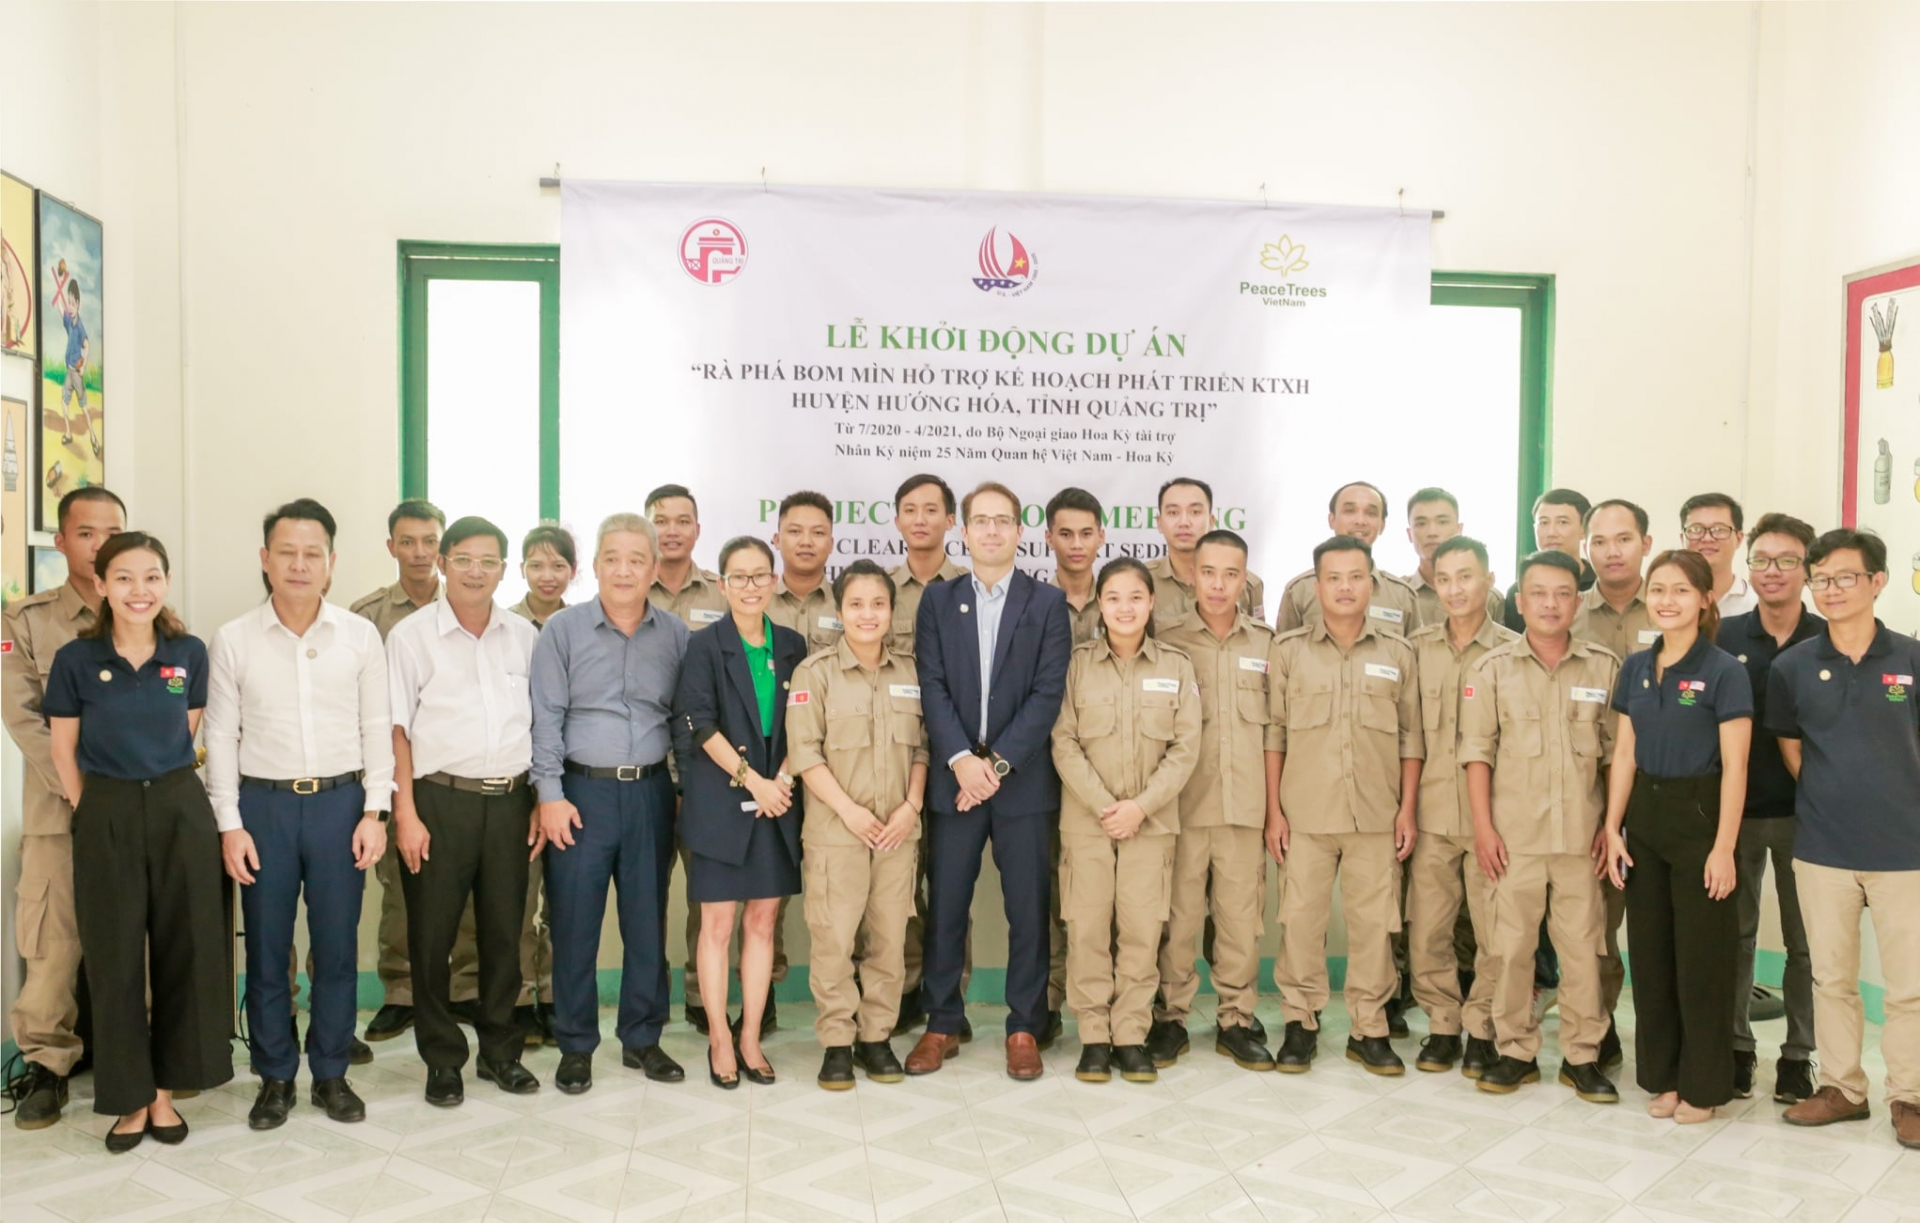 Peace Trees Vietnam and 25 years turning the impossible into possible